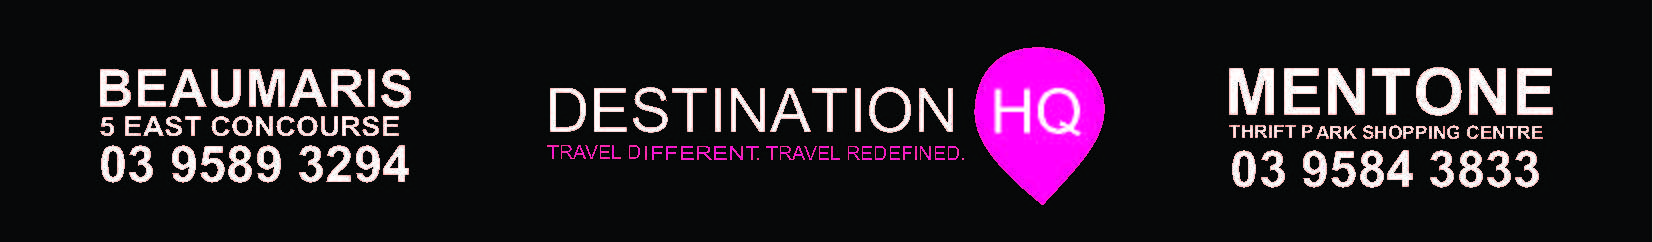 Destination HQ Logo